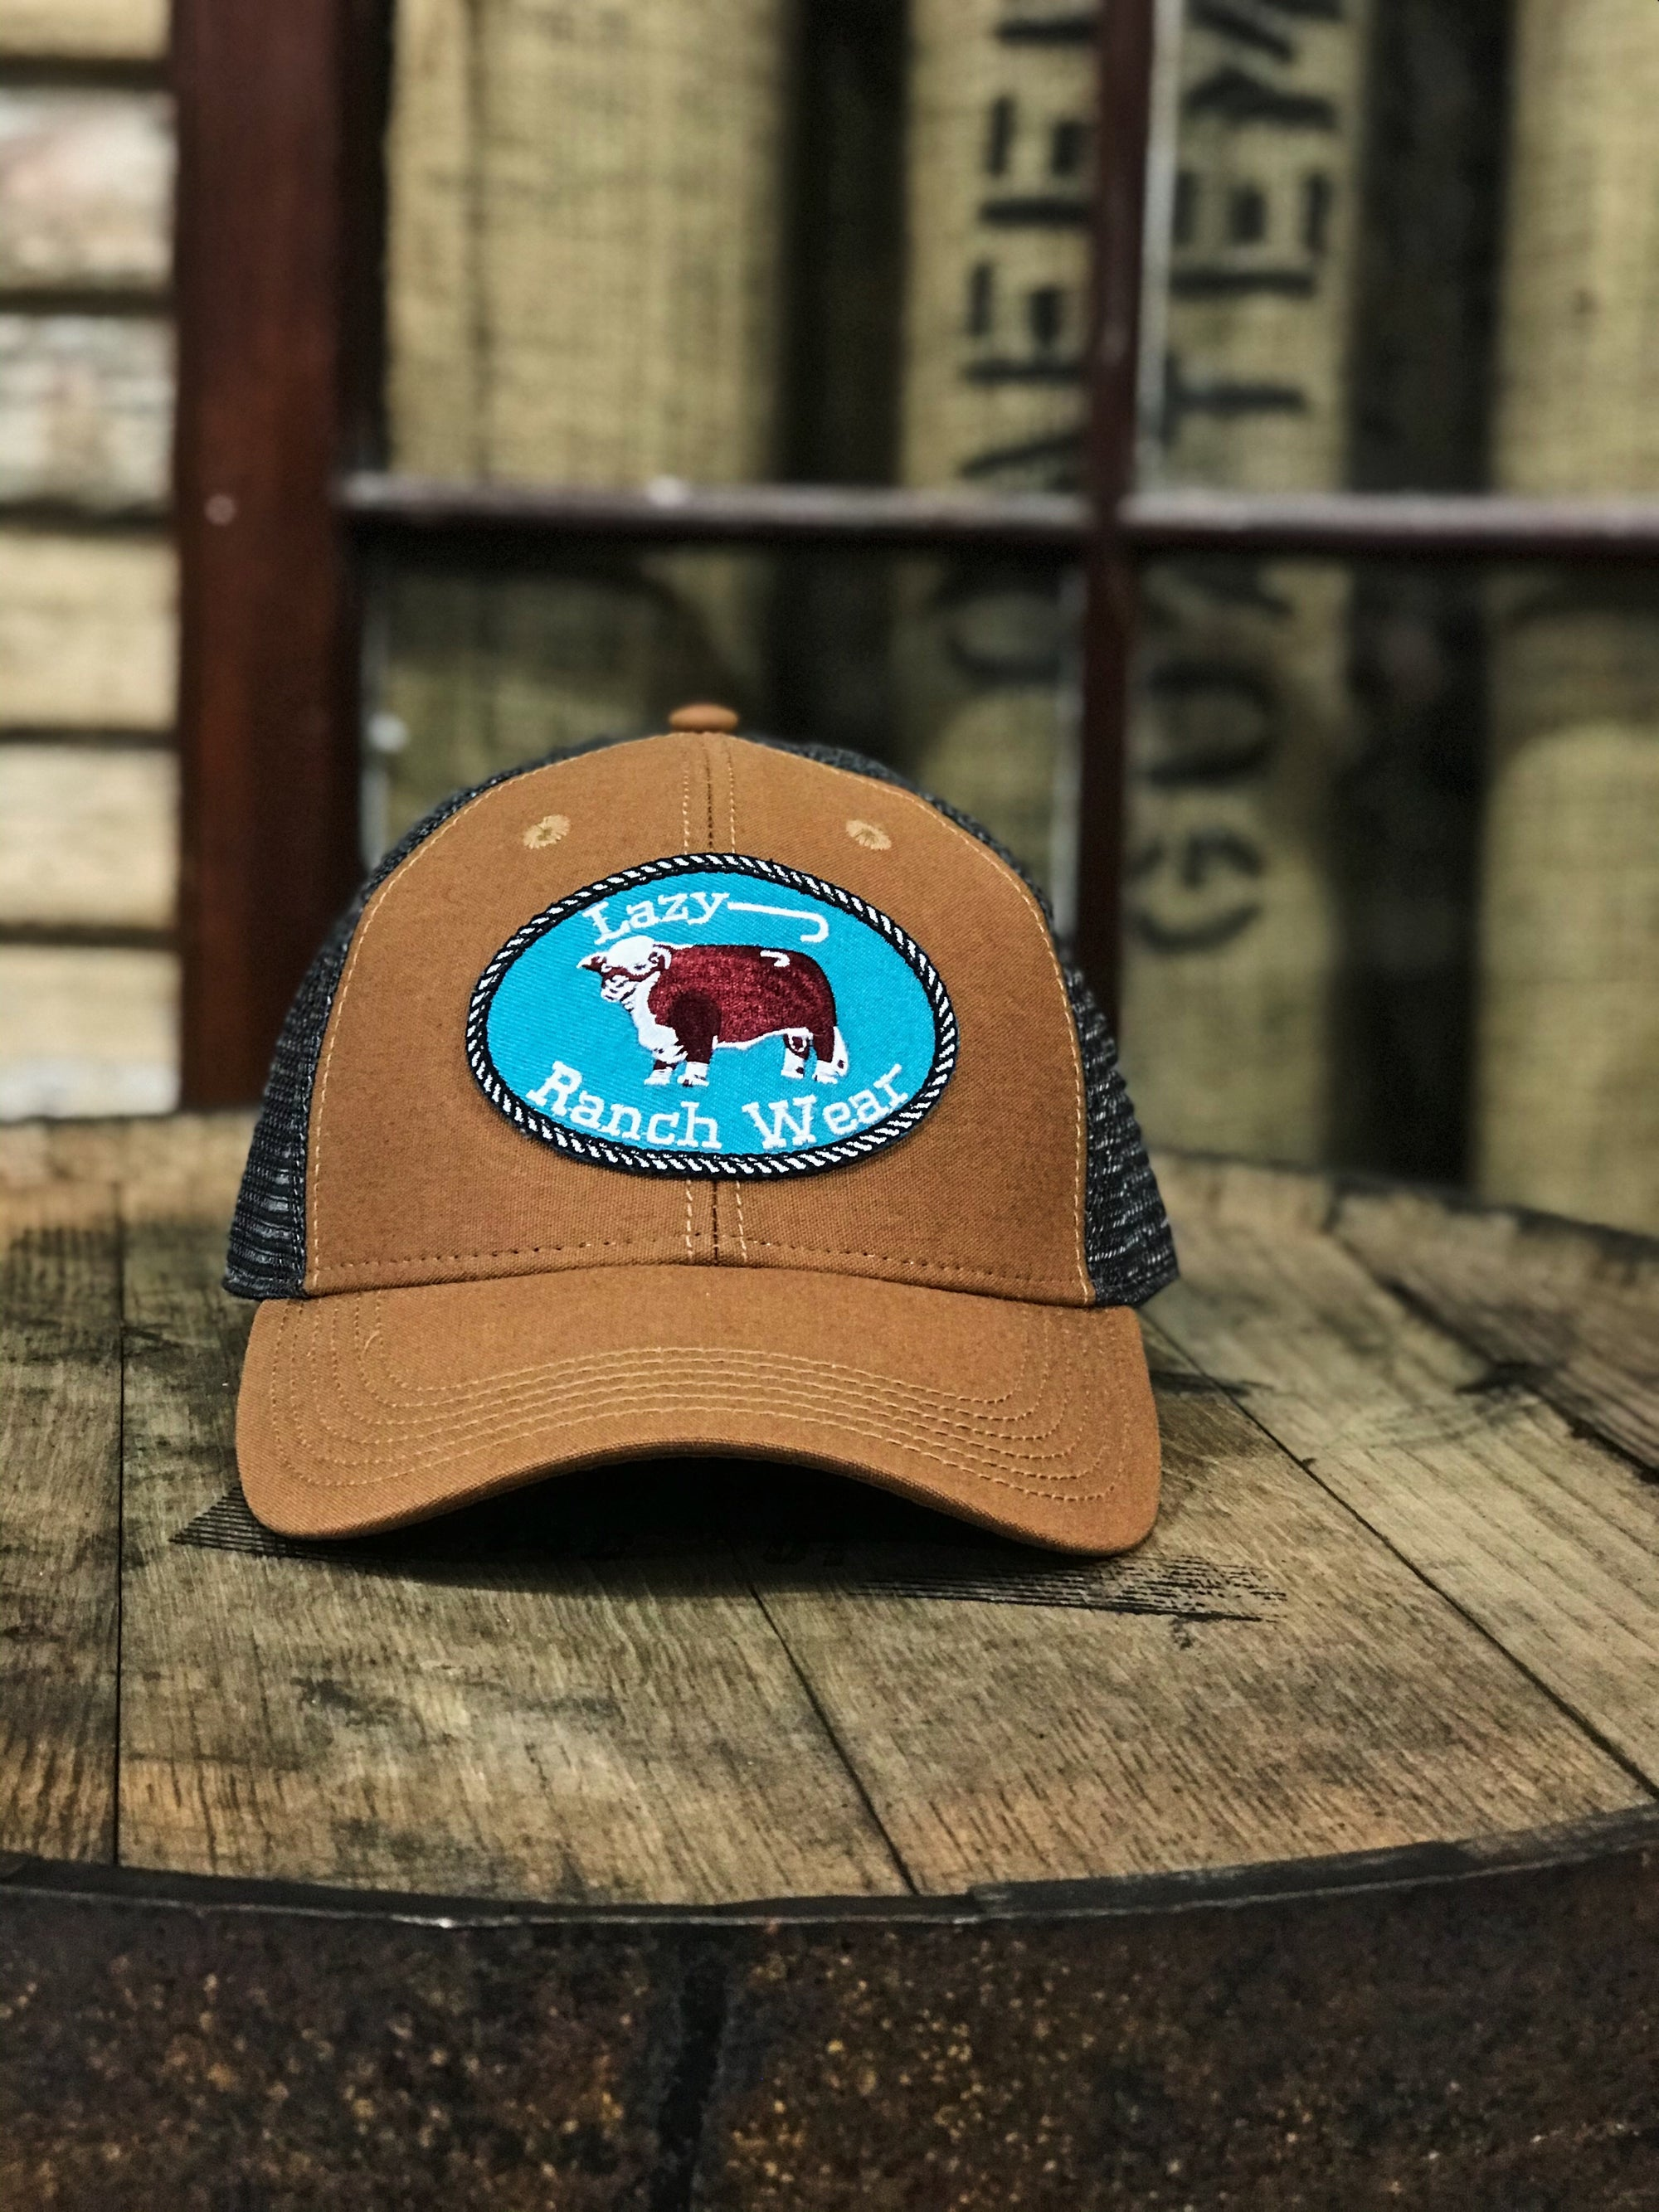 Lazy J Ranch Wear Whiskey Grey Original Patch Cap